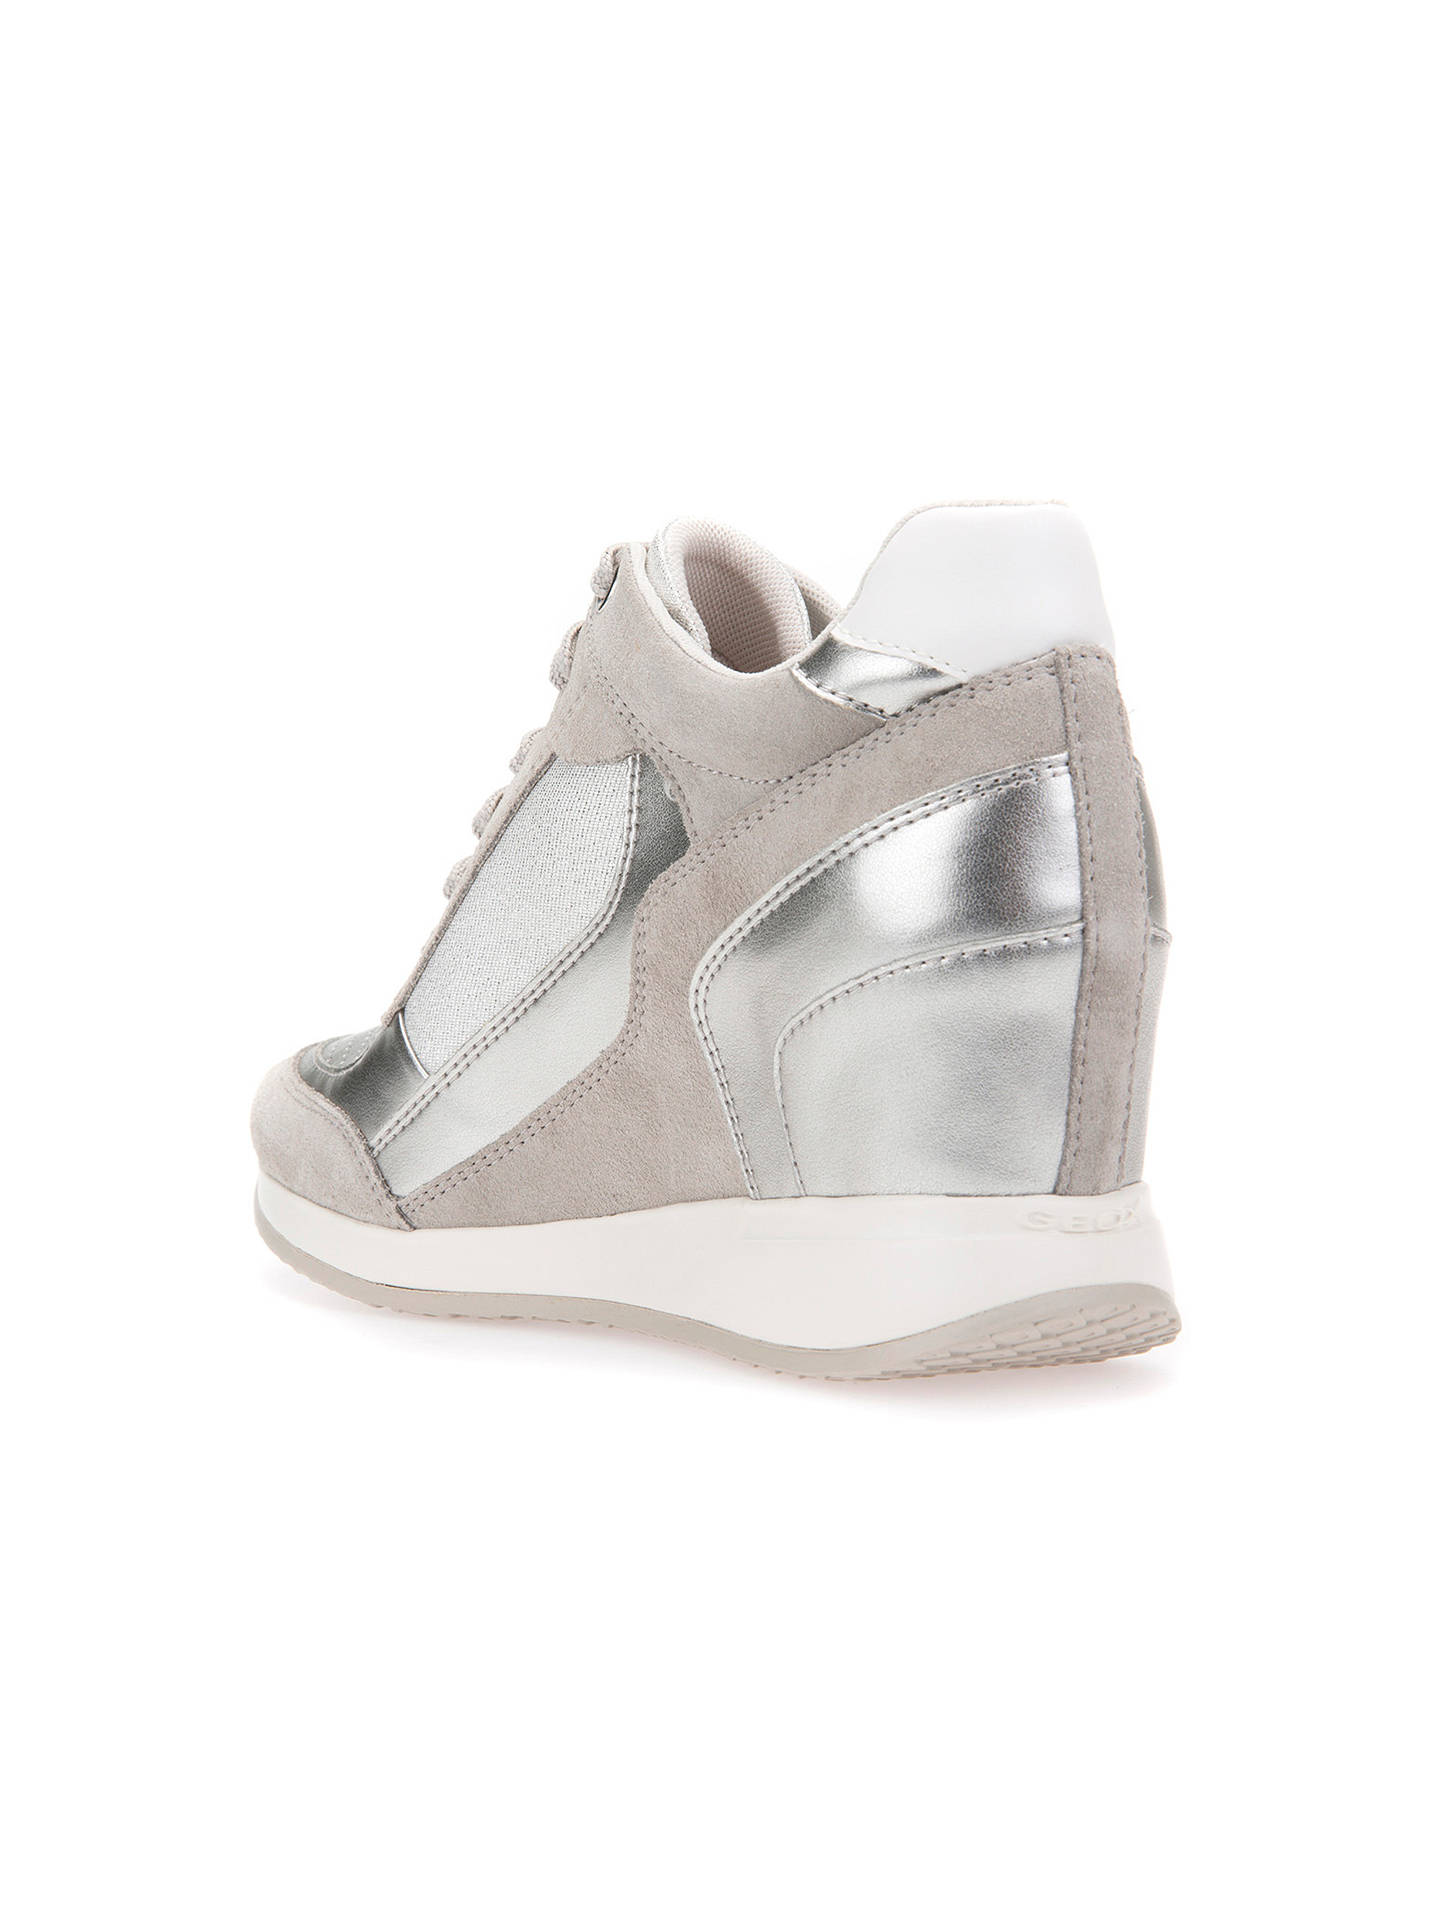 12557db9ab8 Geox Women s Nydame Wedge Heel Zip Up Trainers at John Lewis   Partners